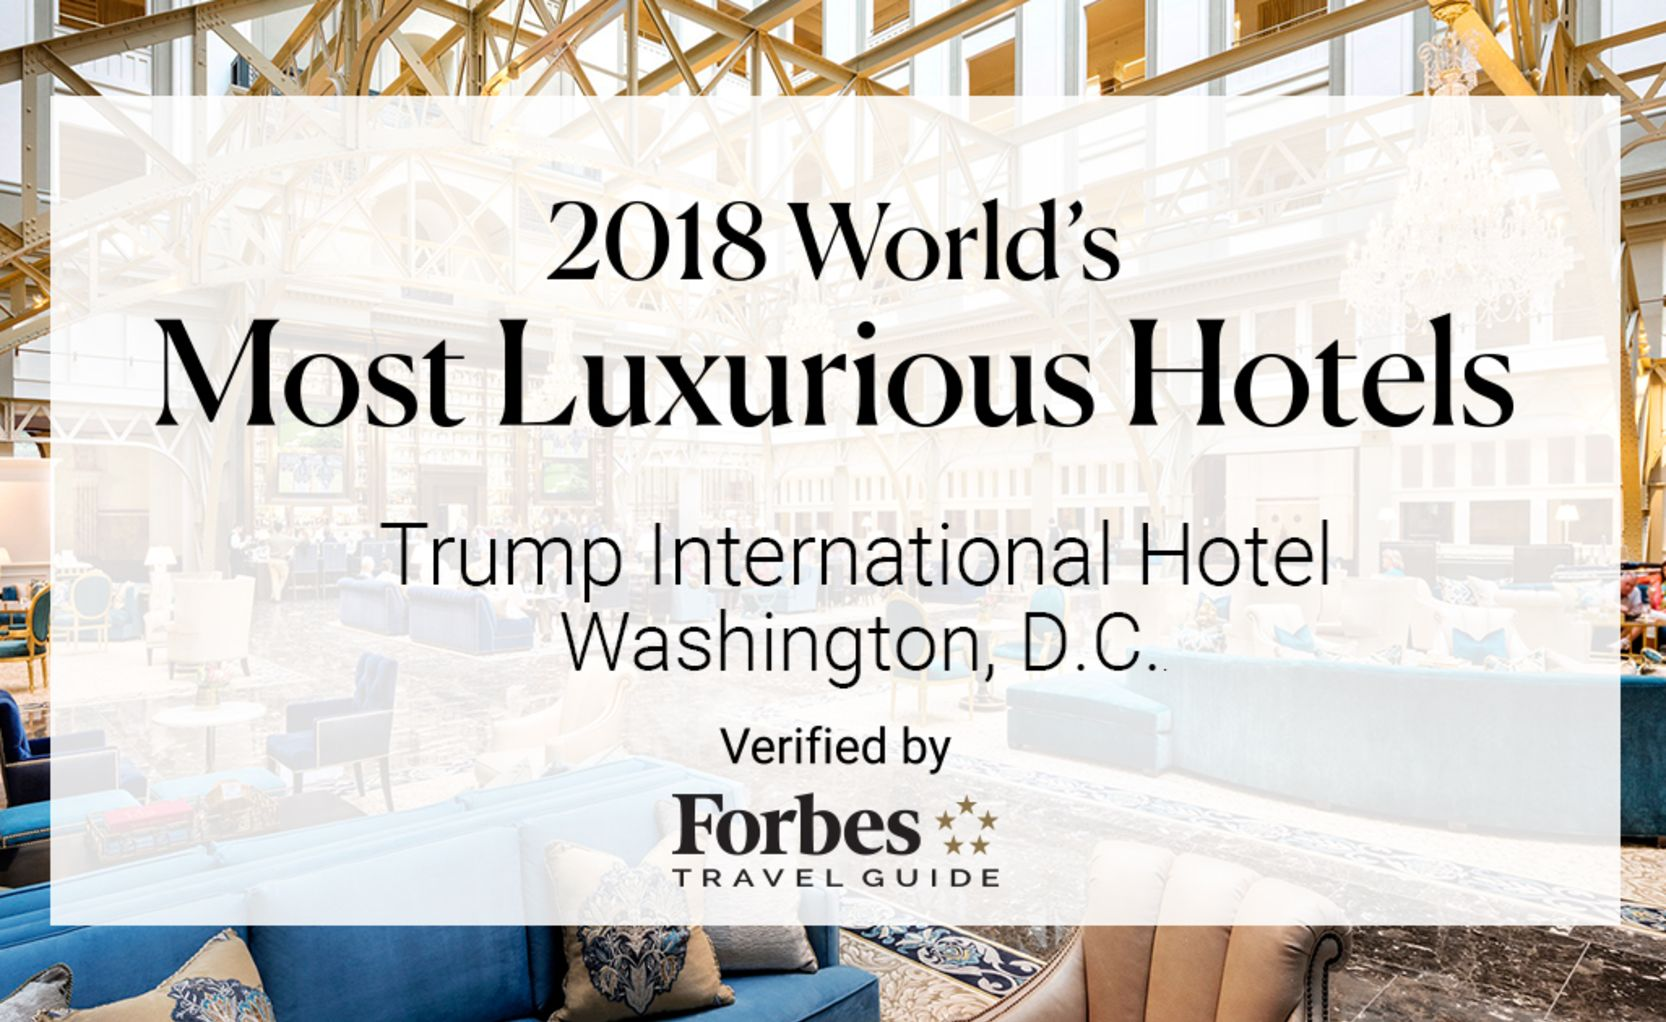 forbes worlds most luxurious hotels - washington dc